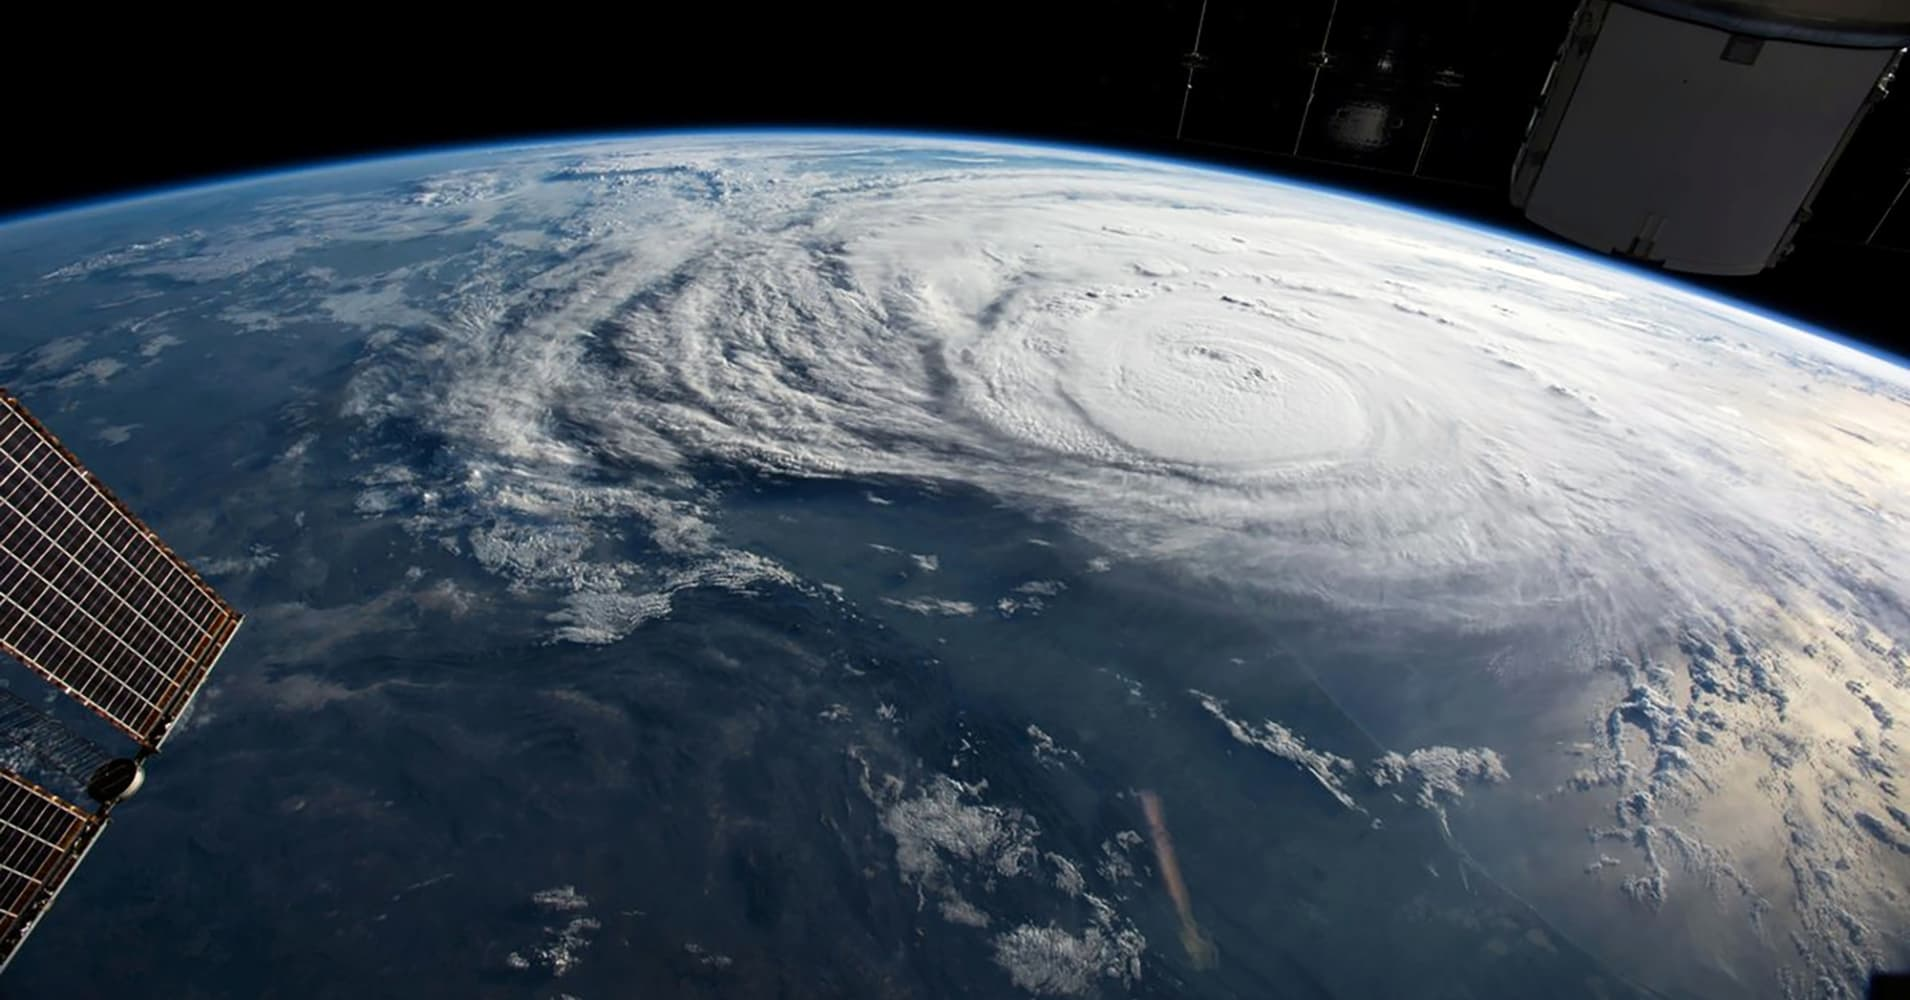 Hurricane Harvey is pictured off the coast of Texas, U.S. from aboard the International Space Station in this August 25, 2017 NASA handout photo.